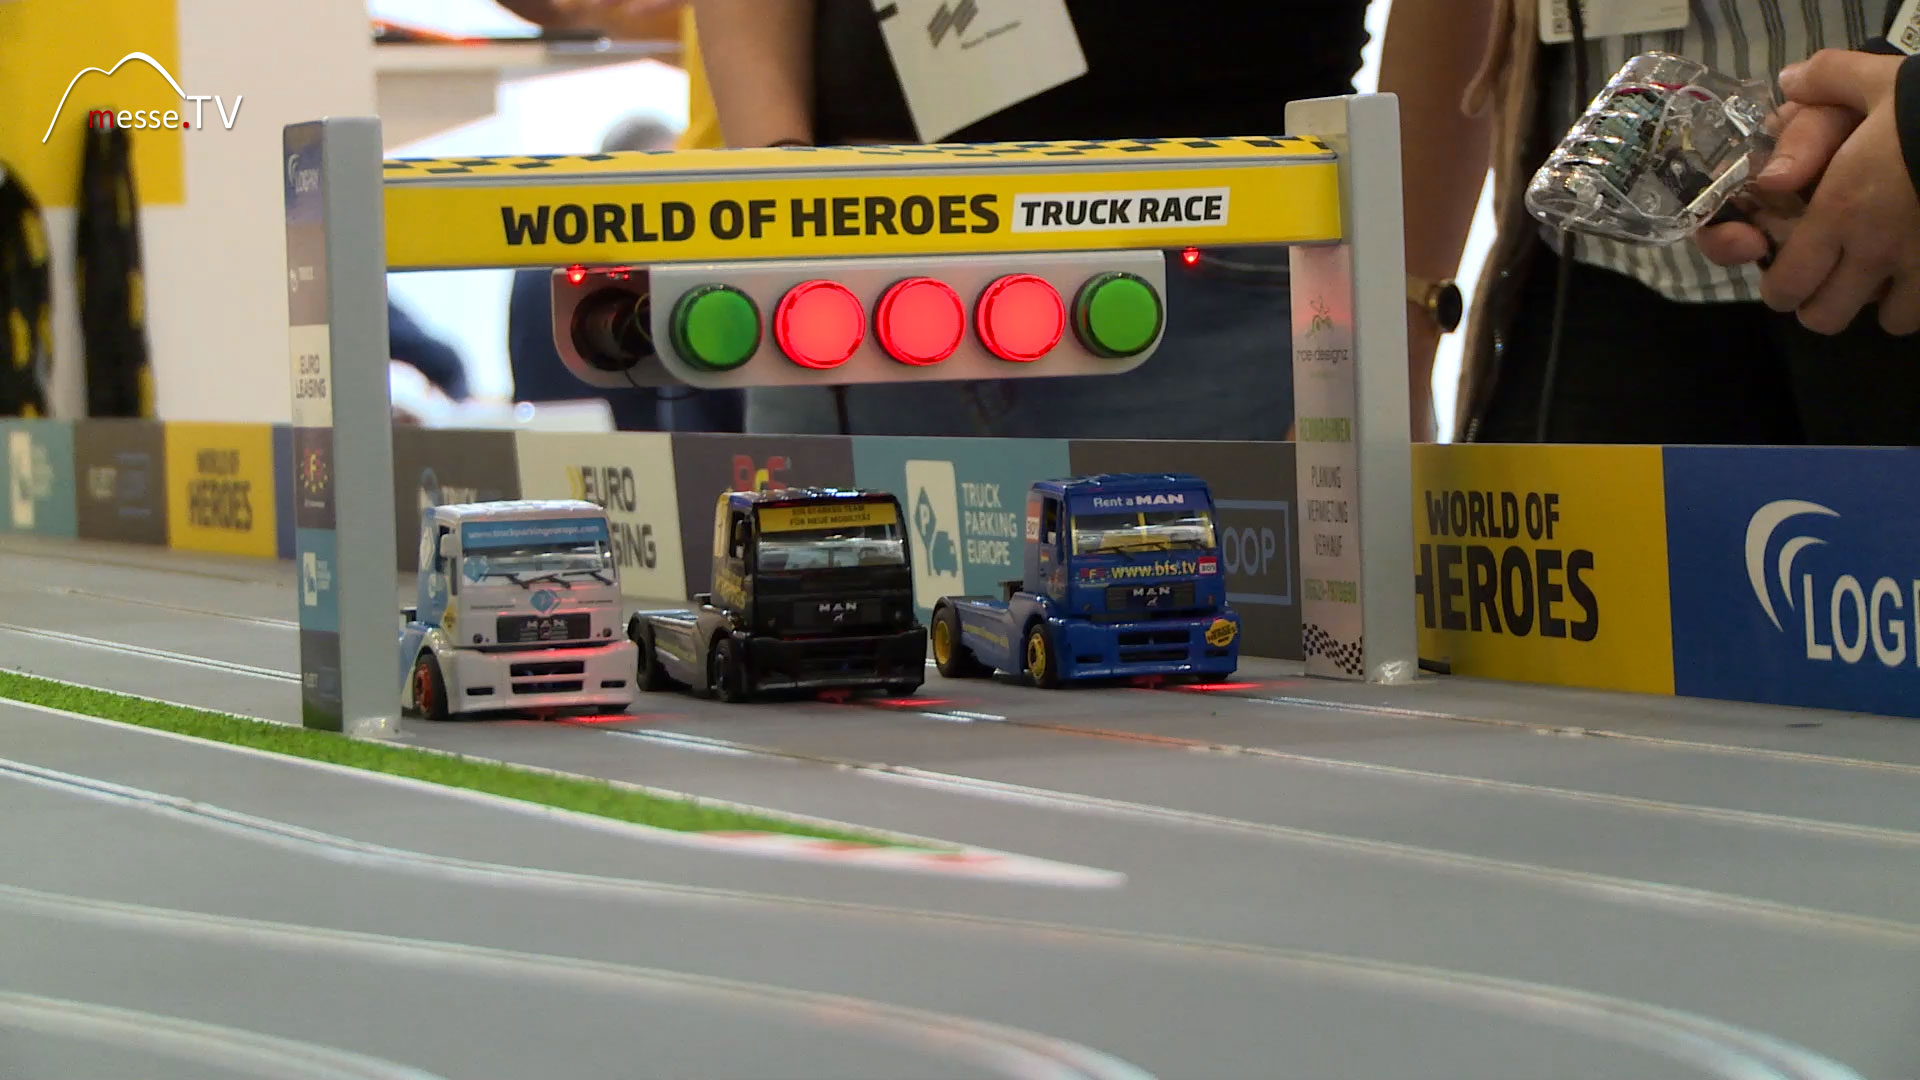 World of Heroes: Truck Race transport logistic 2019